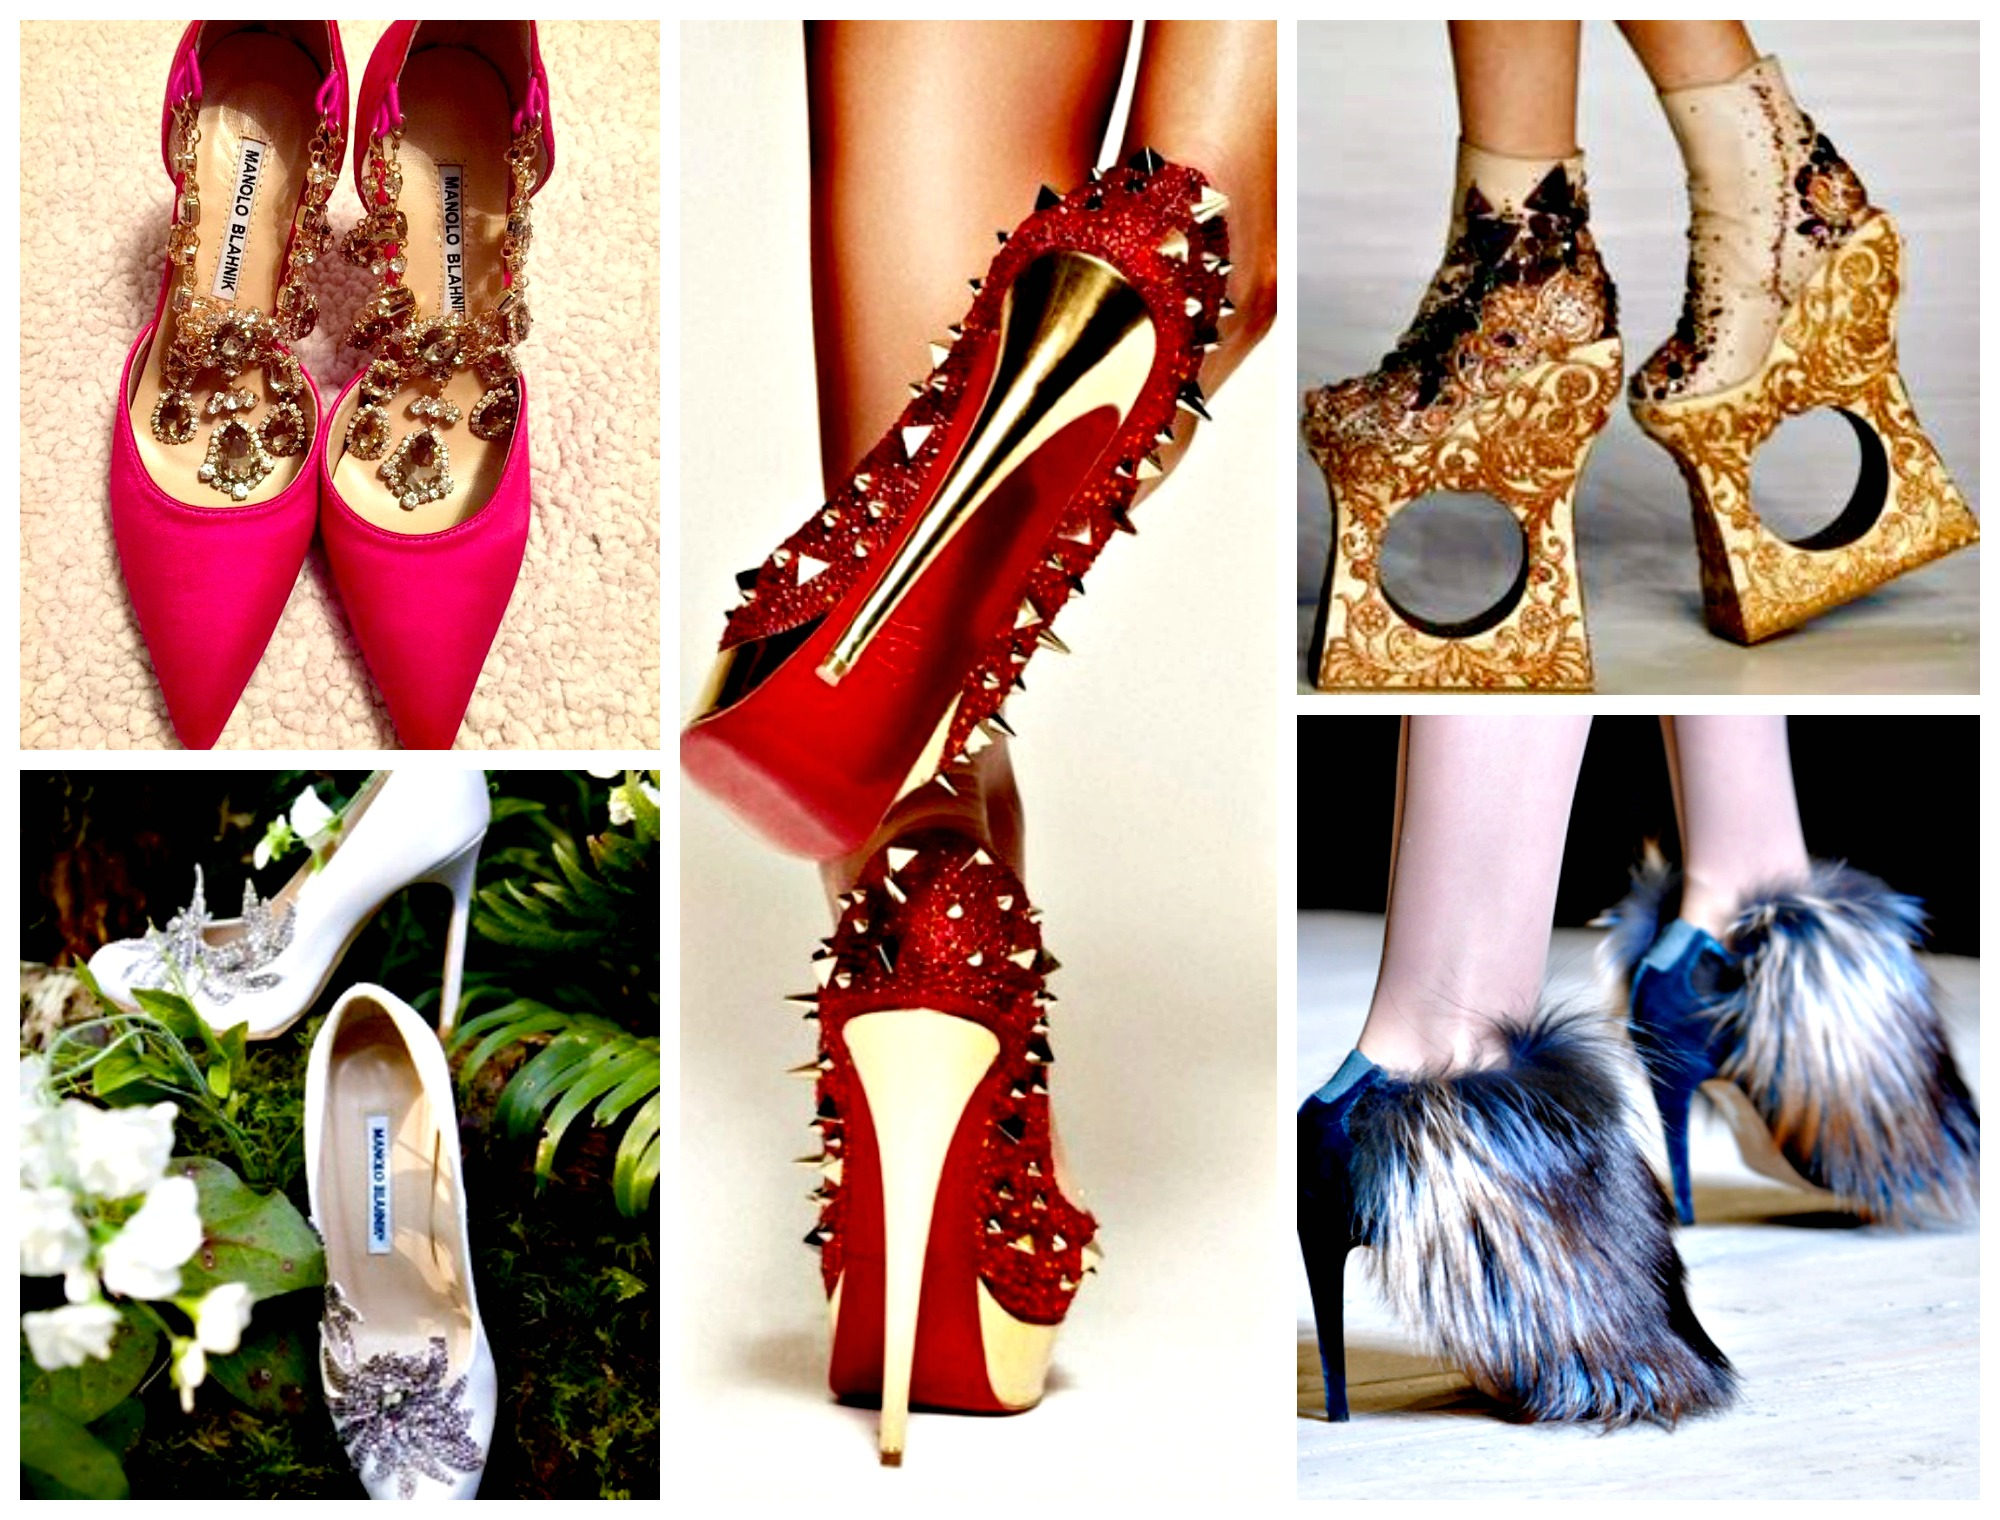 10 Shoe Brands Every Girl Dreams to Shop From